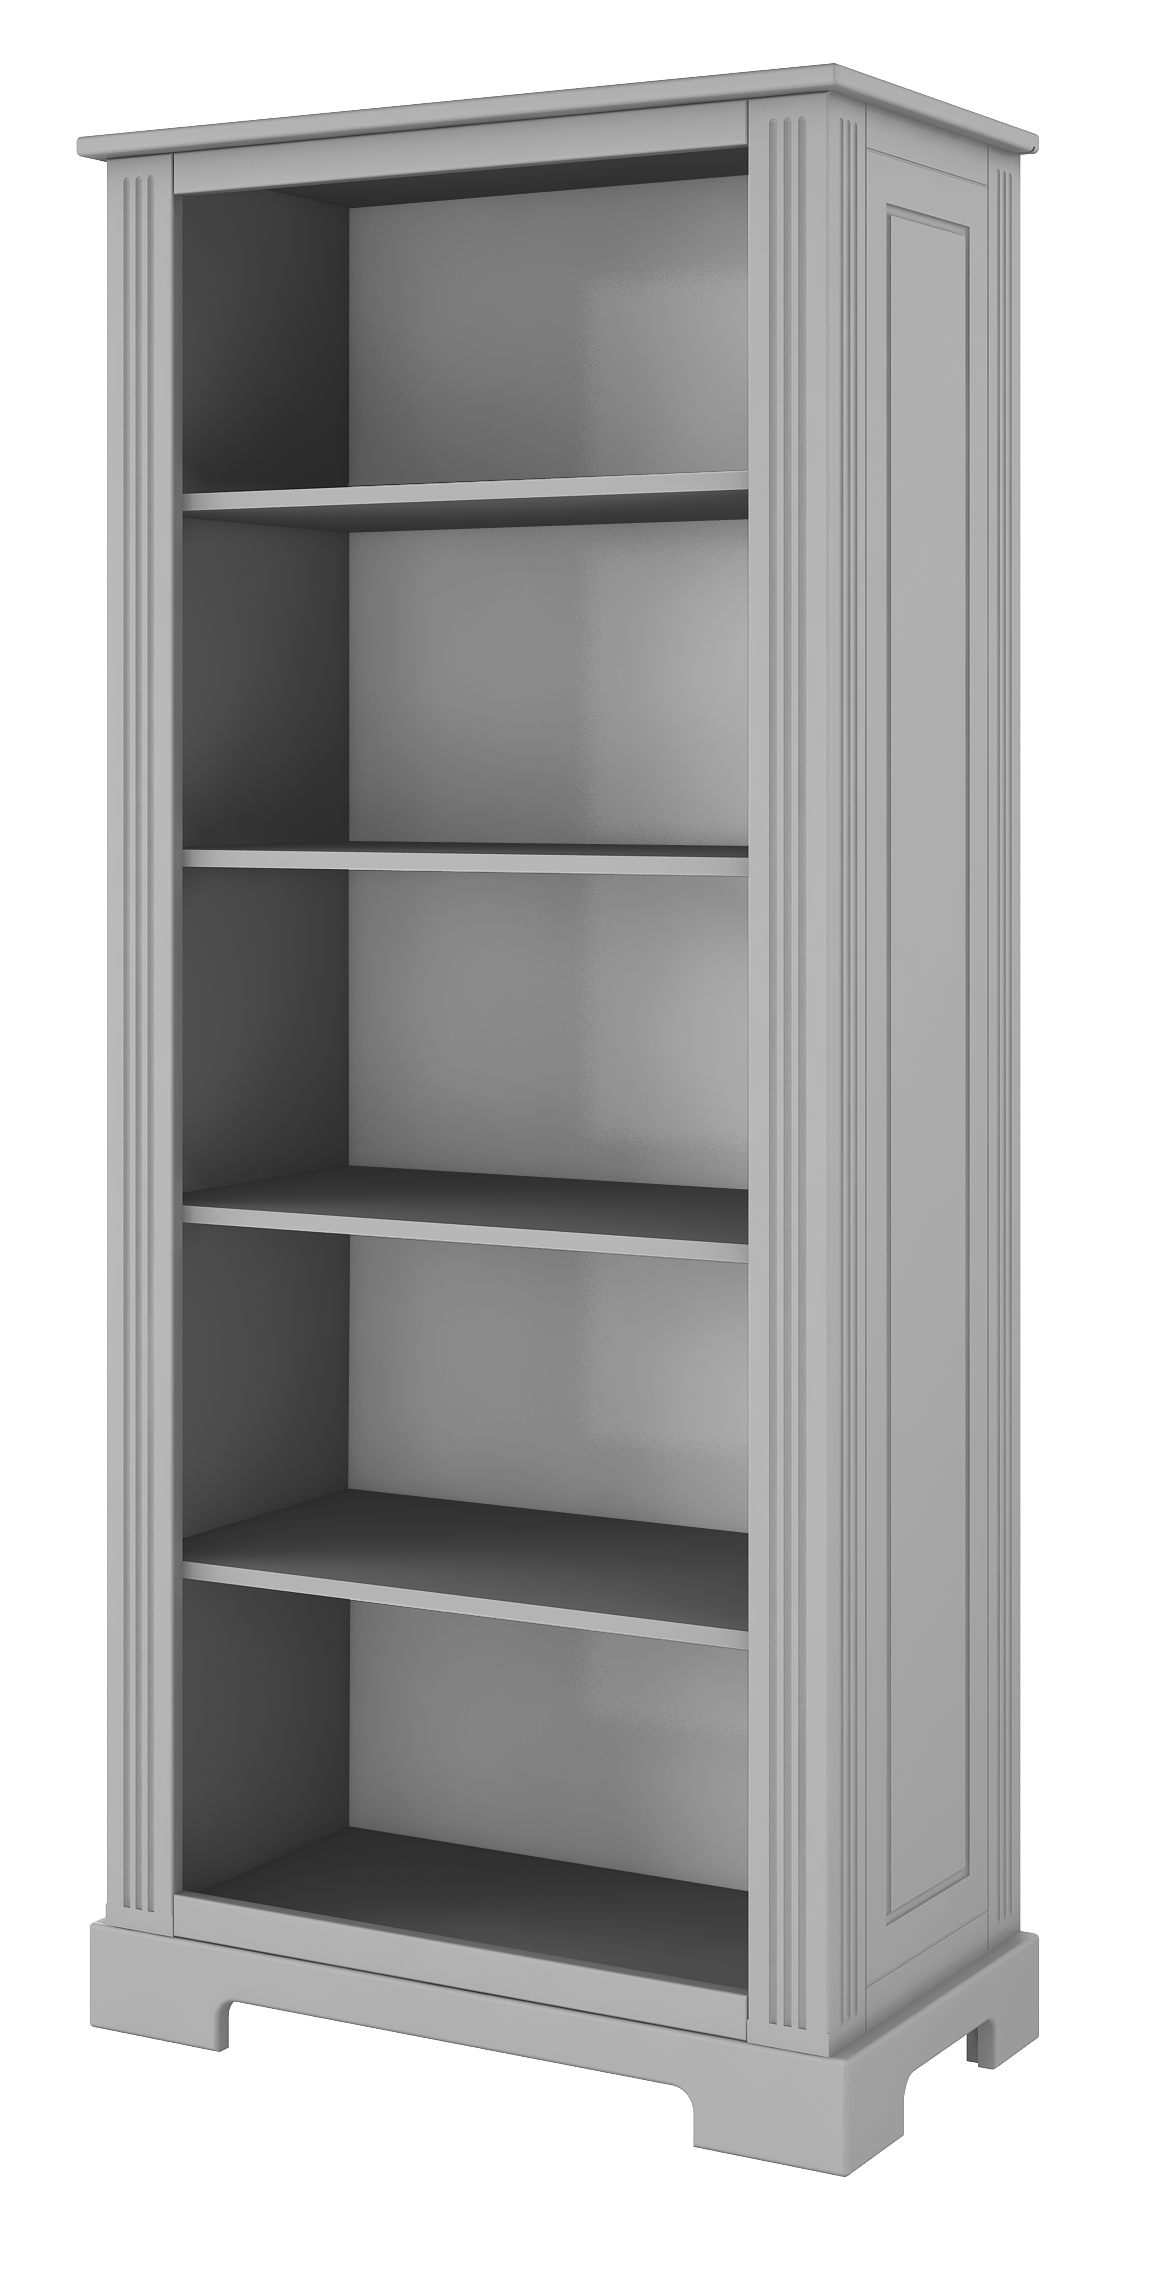 Ines grey bookcase.png